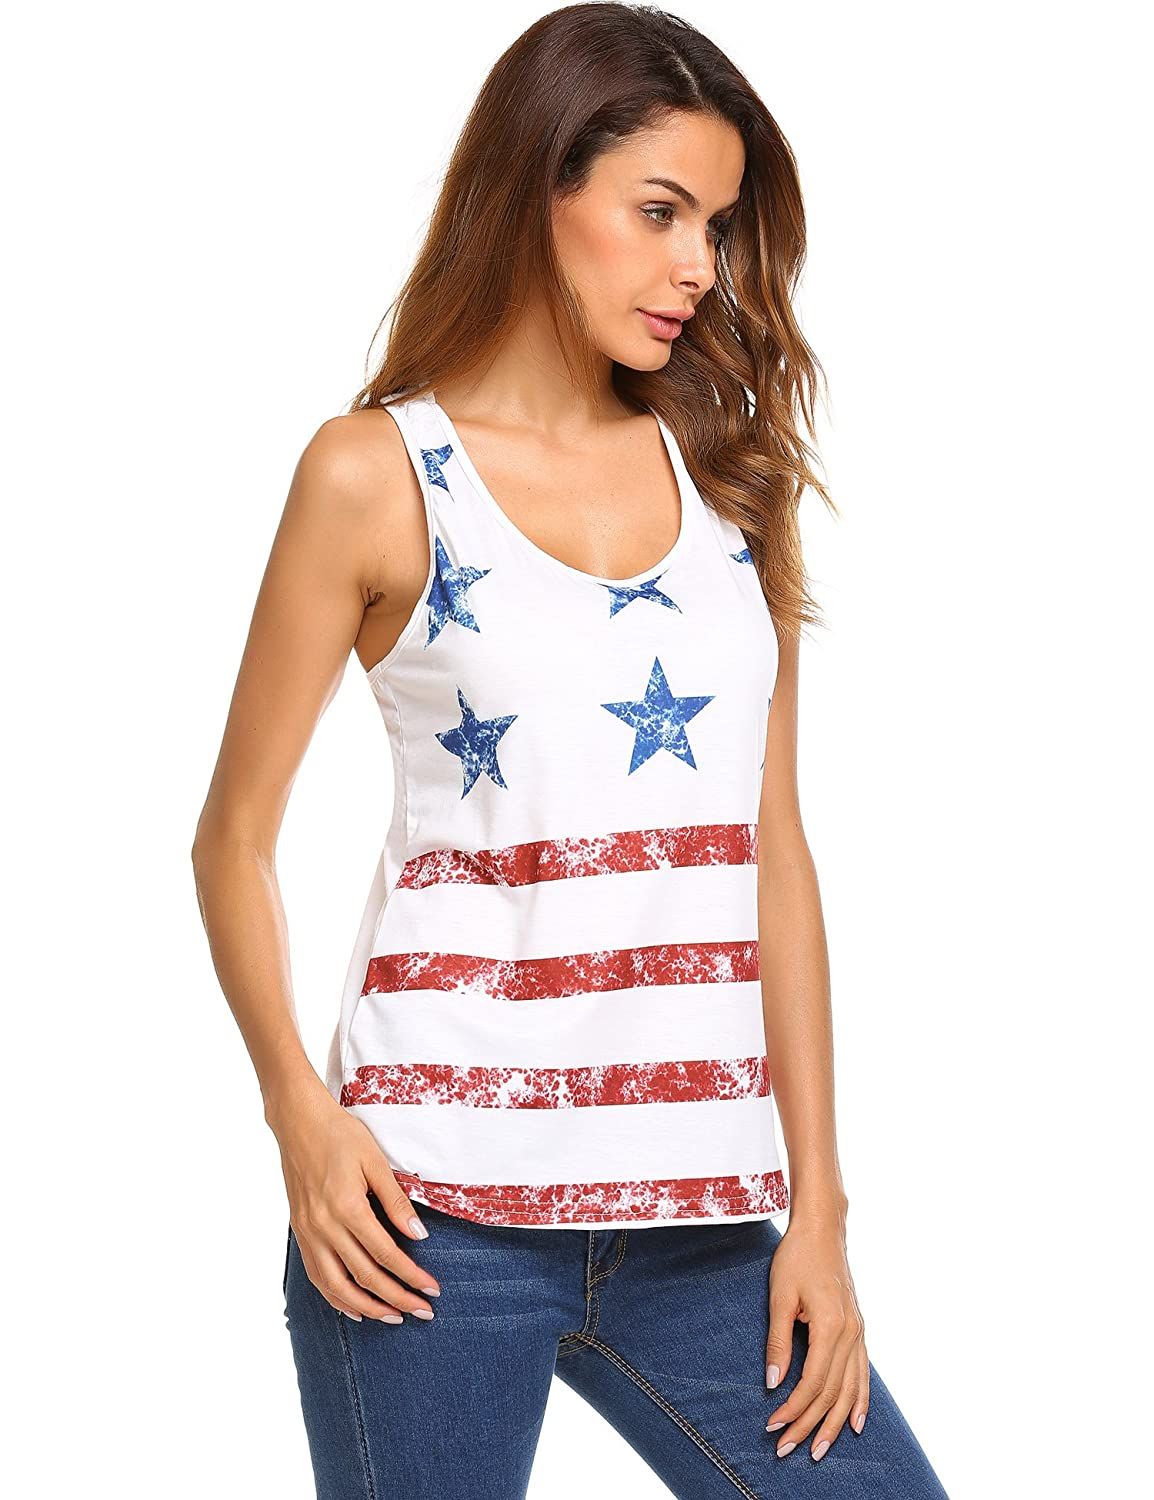 2fcdc631d8 Amazon.com: EASTHER Women Casual Vest 14th of June American Flag Print  Racerback Tank Tops(White,M): Clothing